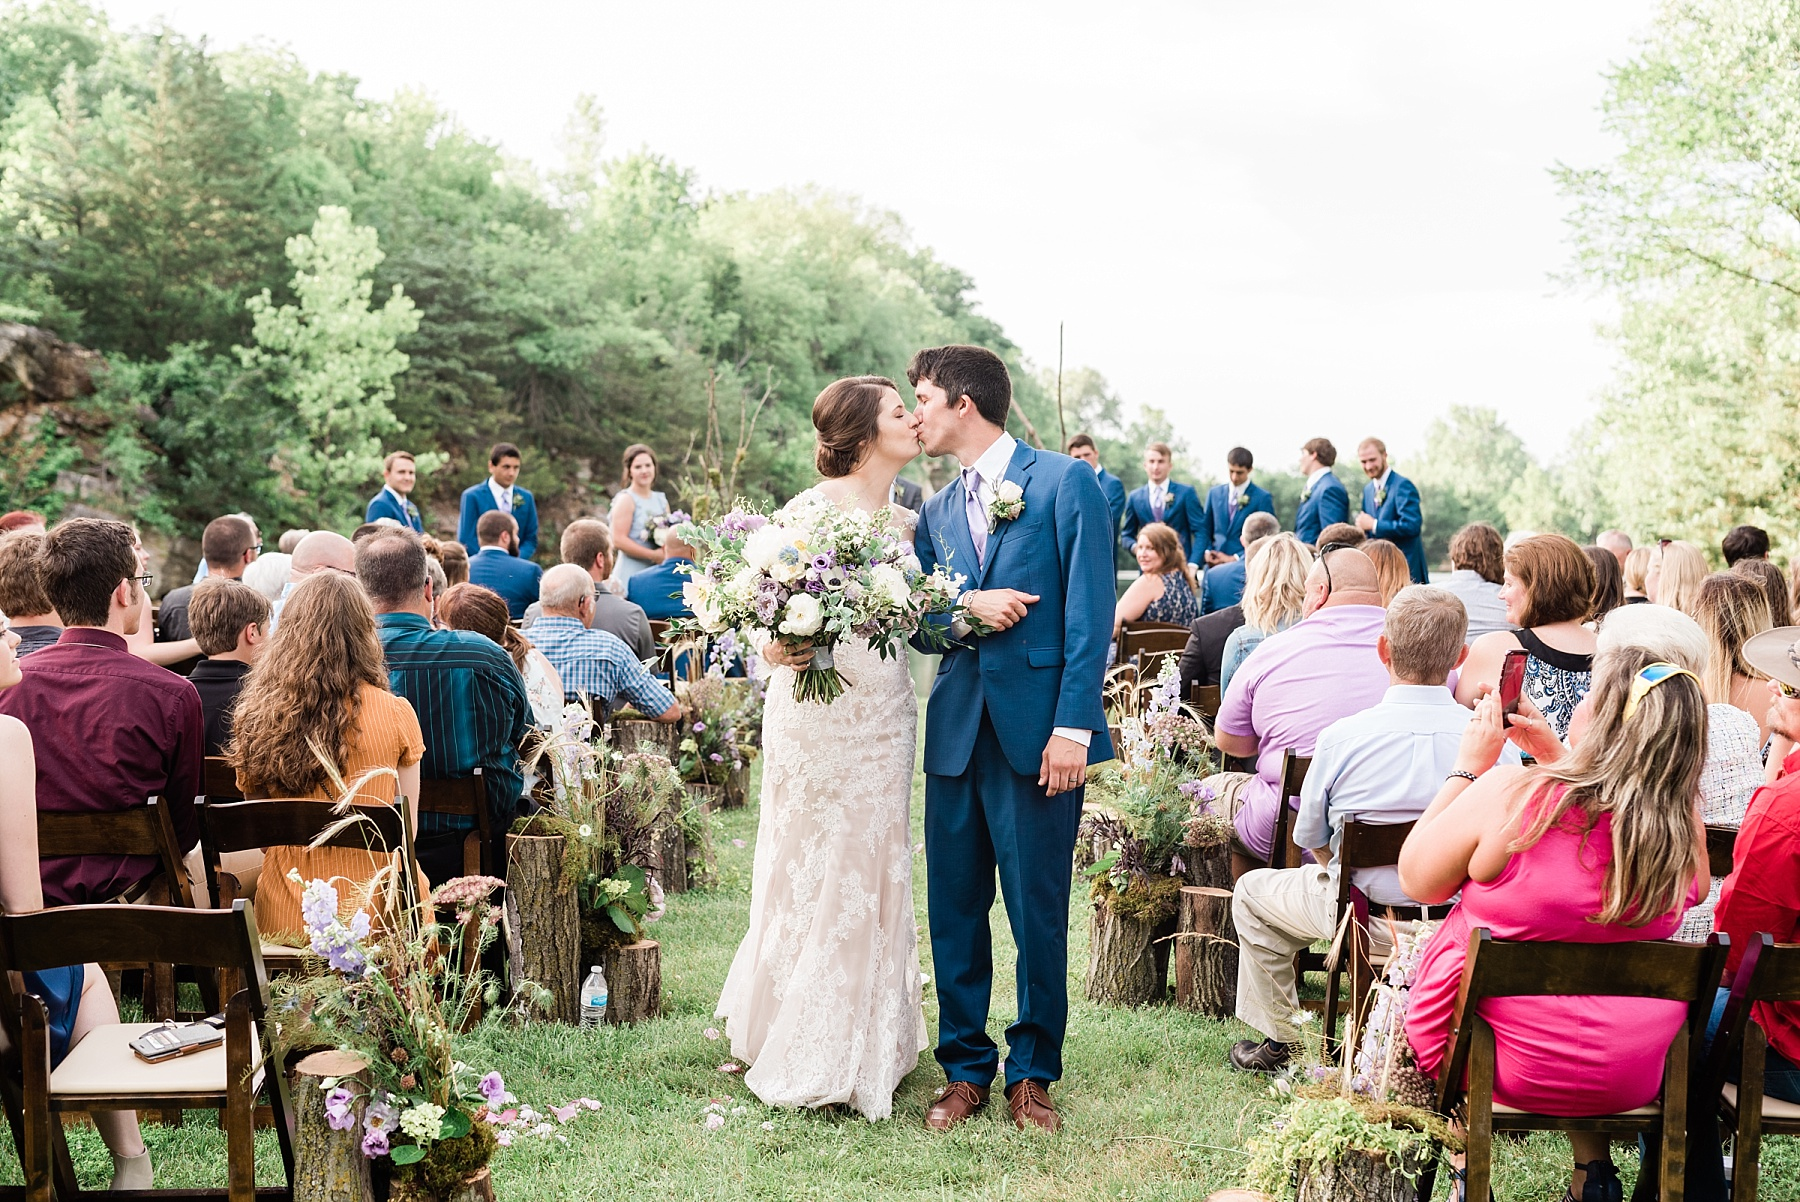 Intimate Mountain Hues Inspired Summer Wedding at Wildcliff Weddings and Events by Kelsi Kliethermes Photography Best Missouri and Maui Wedding Photographer_0010.jpg